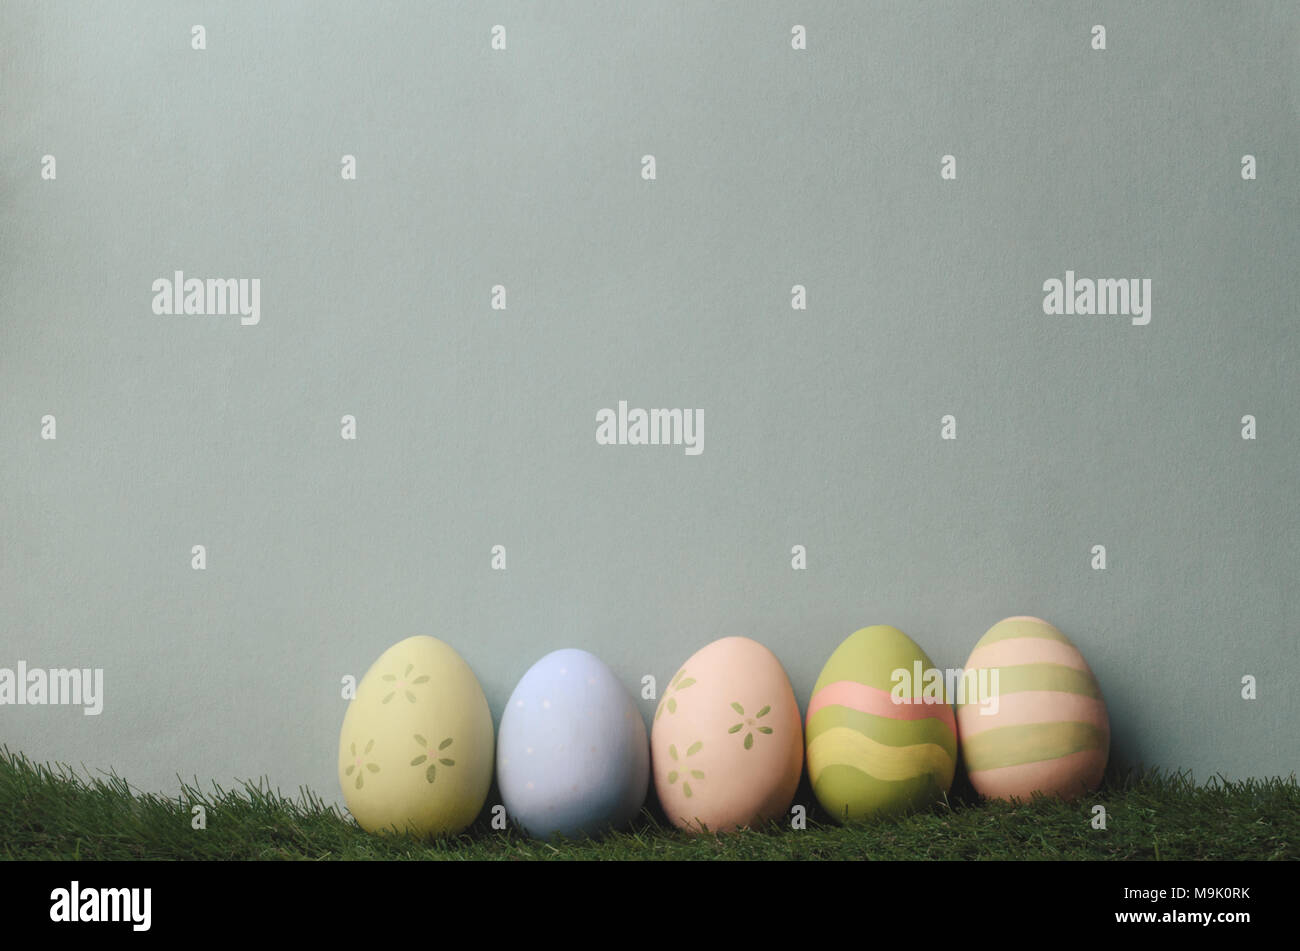 A row of decorated eggs in different colours on artificial grass against blue grey background for Easter. Filtered to give muted, retro style. - Stock Image